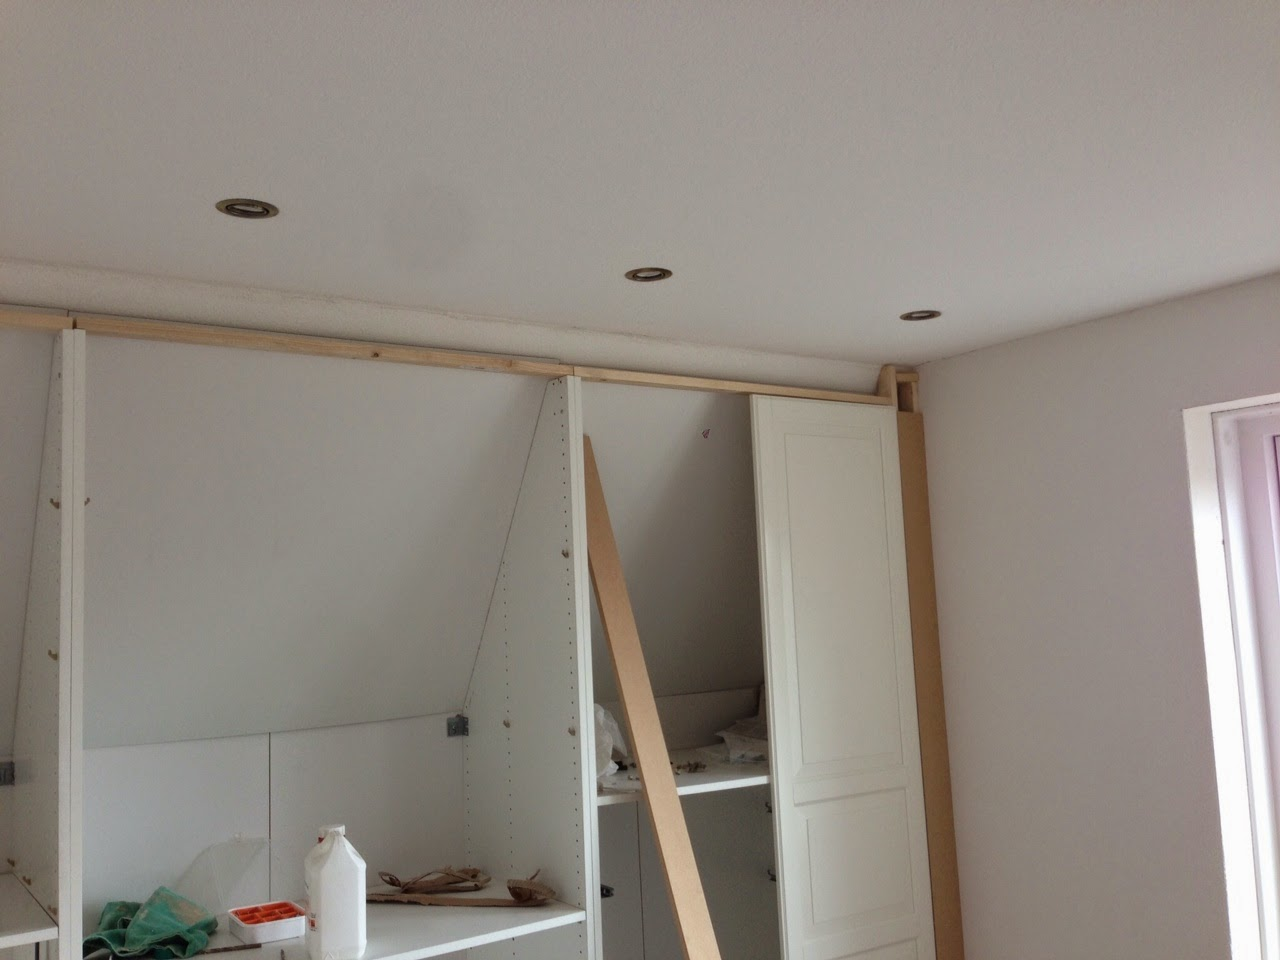 attic handle ideas - Pax Built in for sloping ceiling IKEA Hackers IKEA Hackers